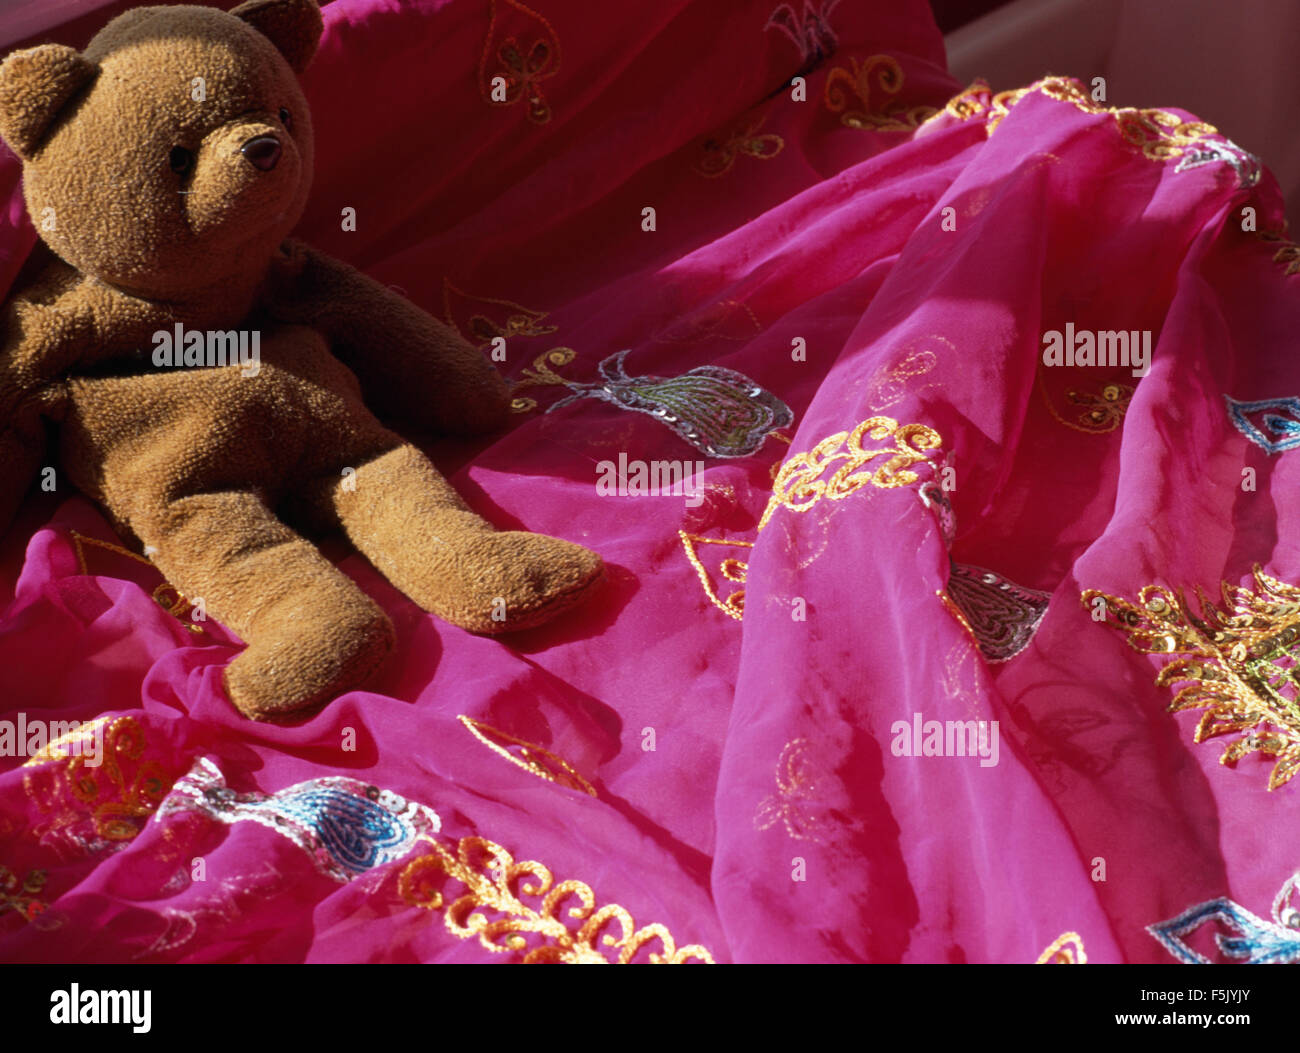 Close-up of an old teddy bear on bright pink sari fabric - Stock Image